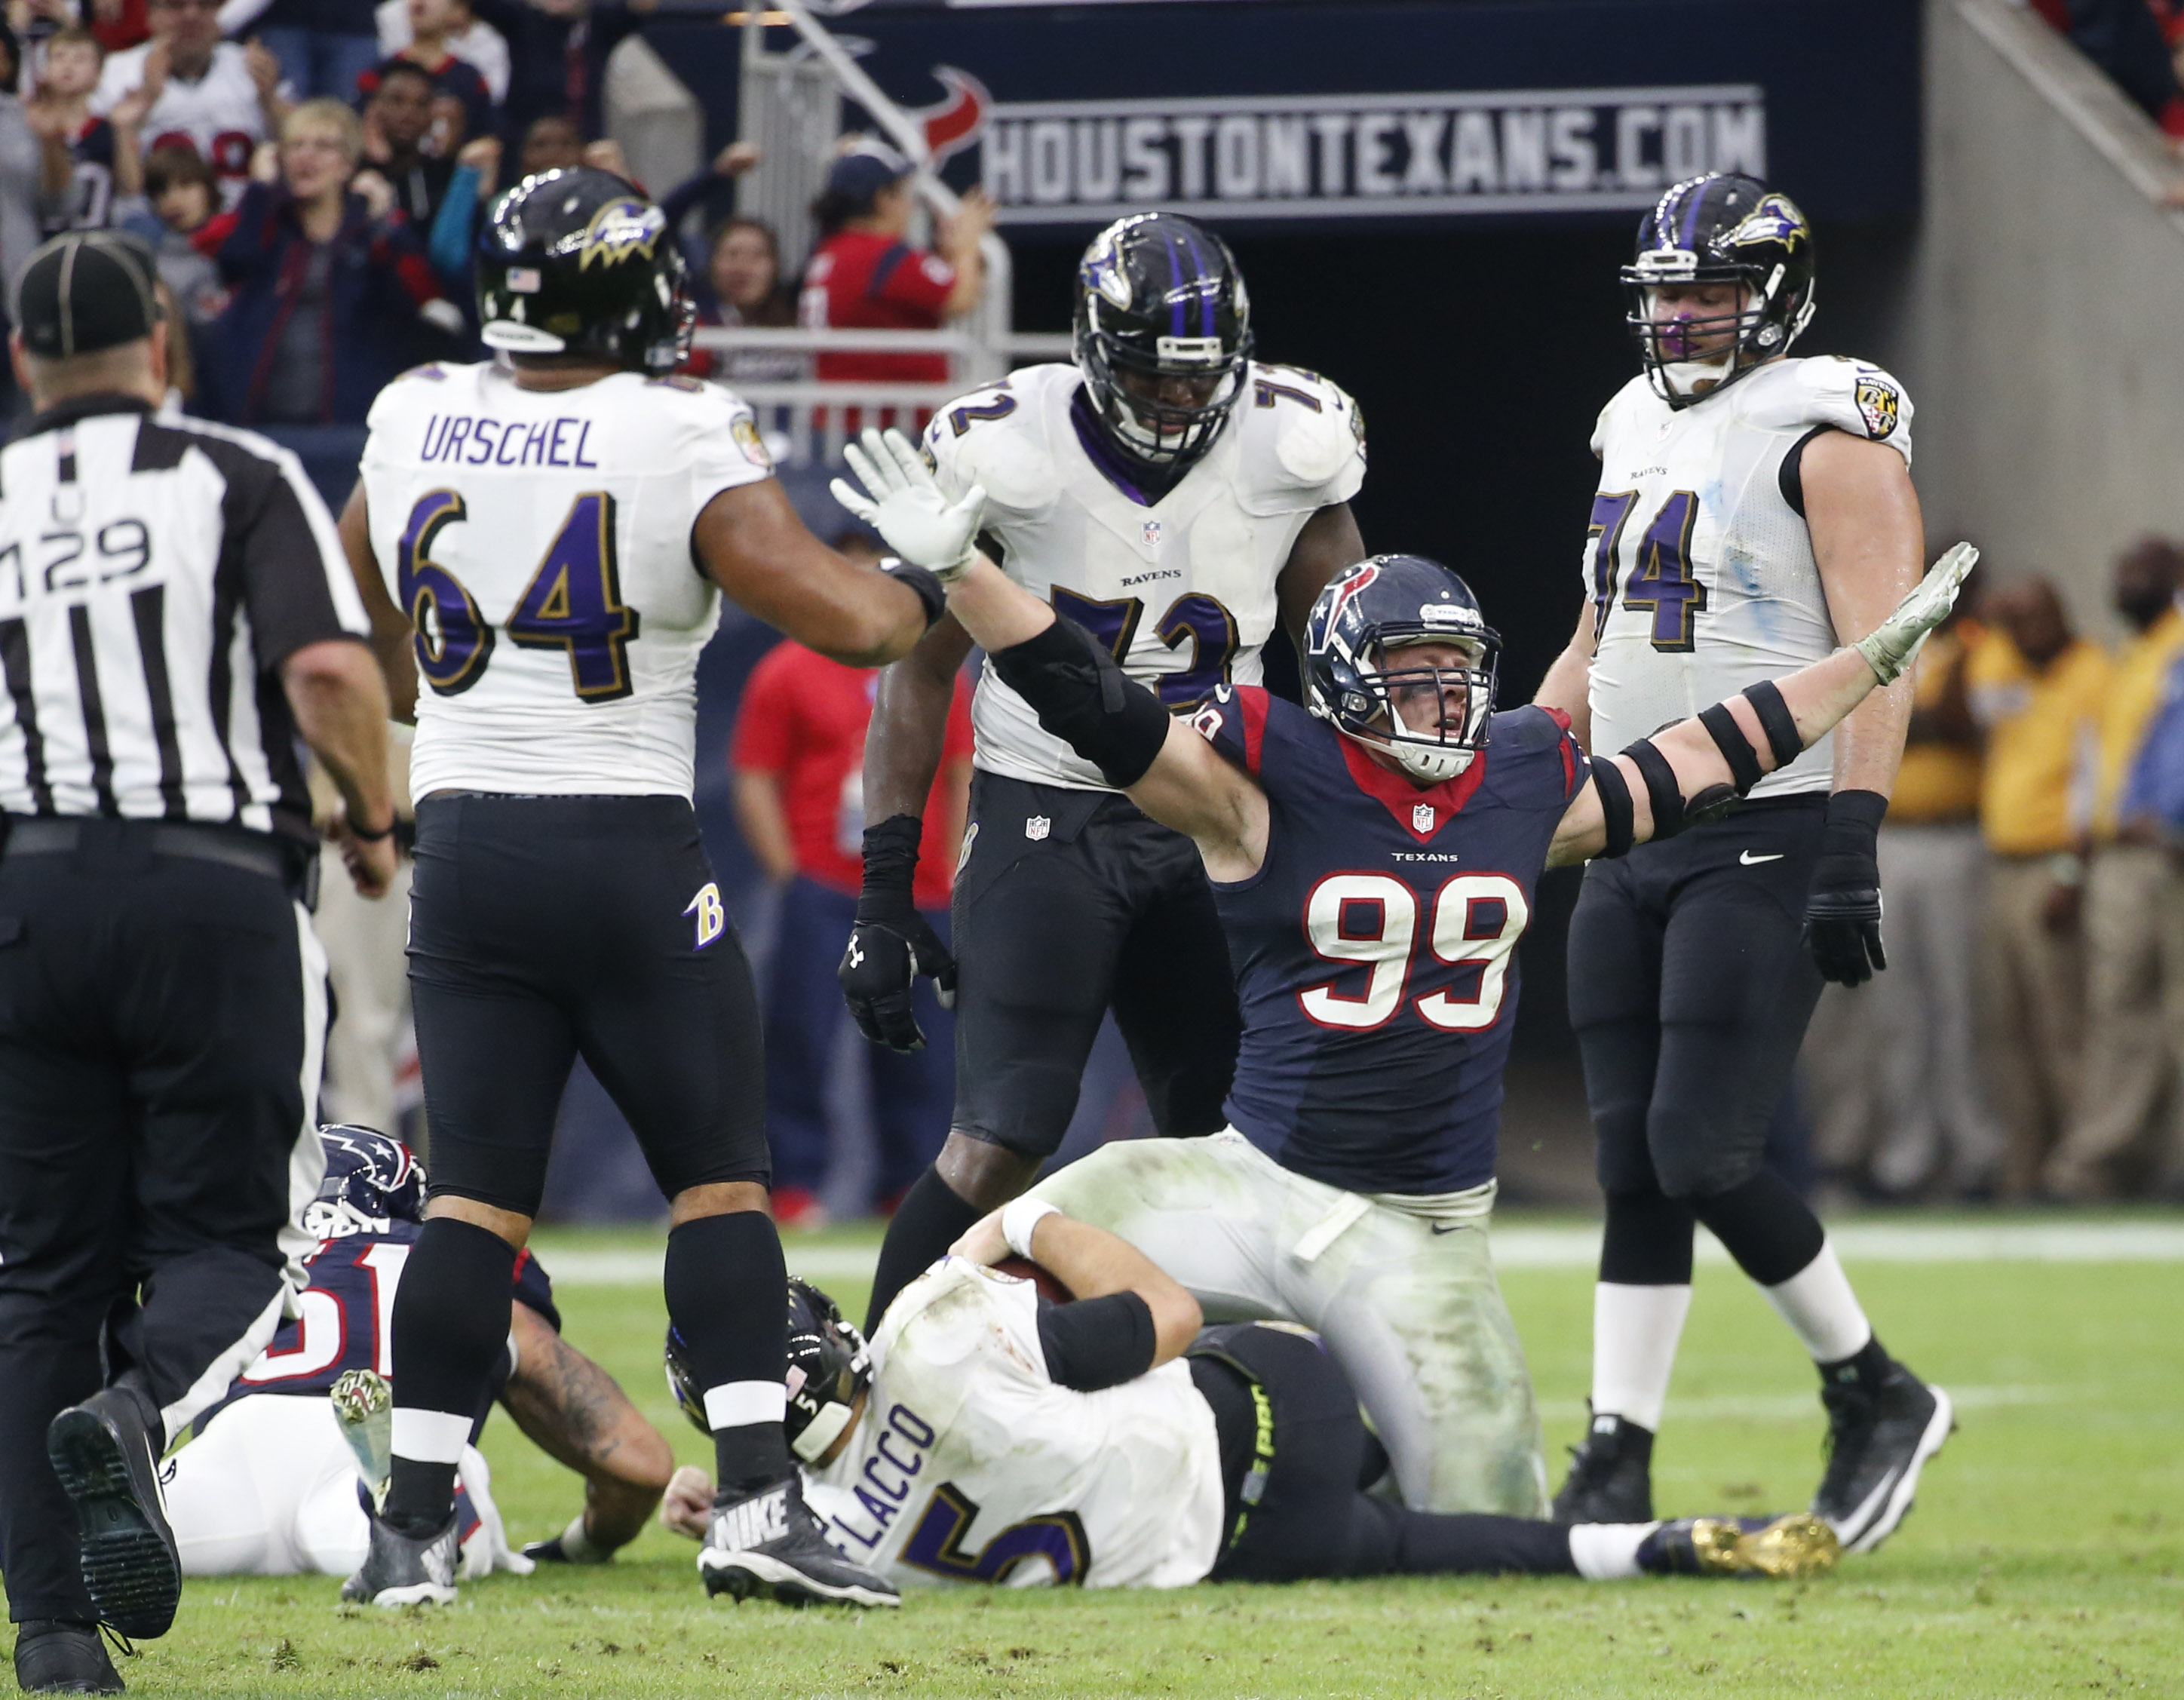 The Browns must do this on Sunday without the benefit of J.J. Watt.